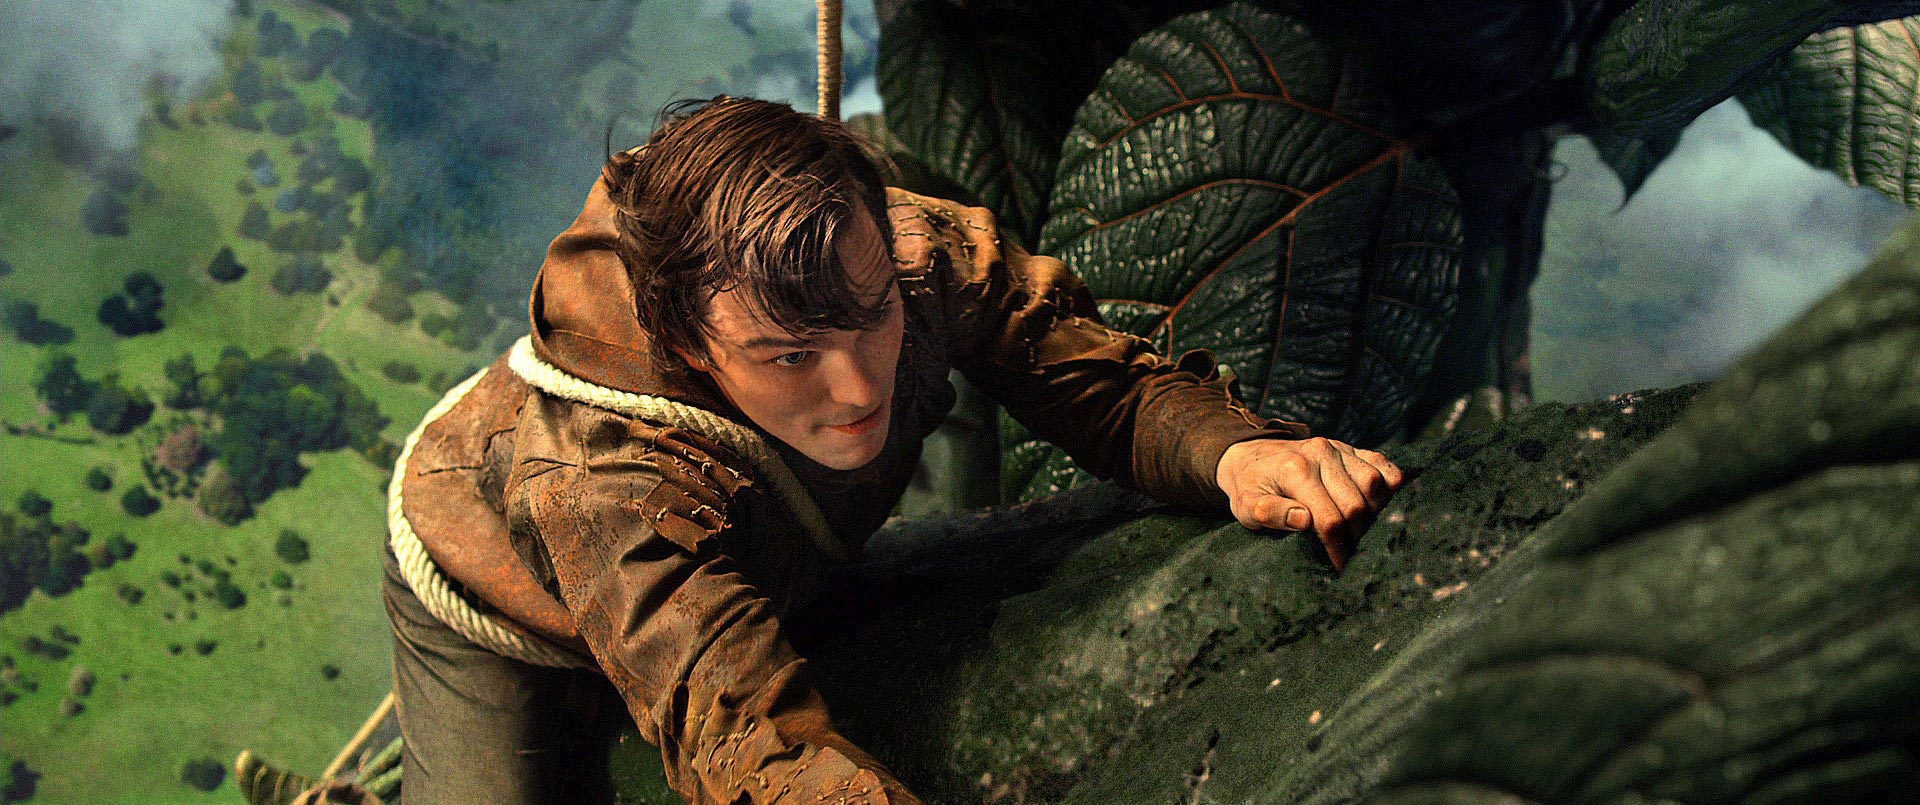 Box Office Results: Jack the Giant Slayer Fails To Bring Giant Numbers